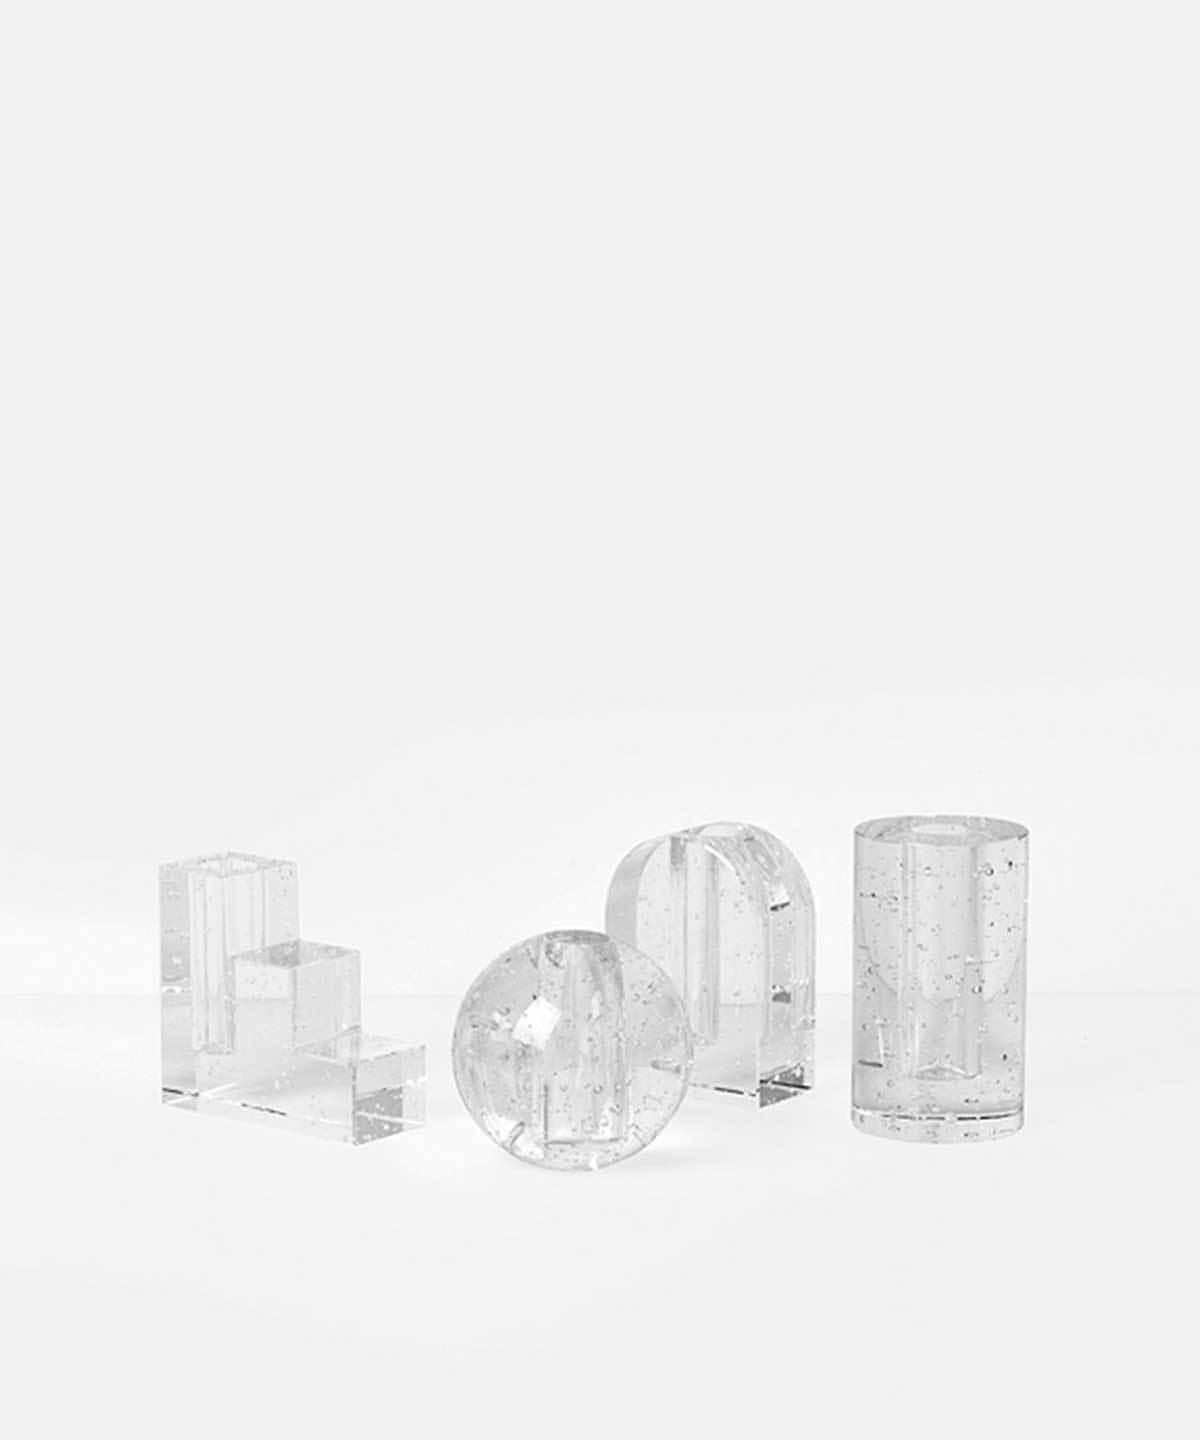 Bubble Glass Objects